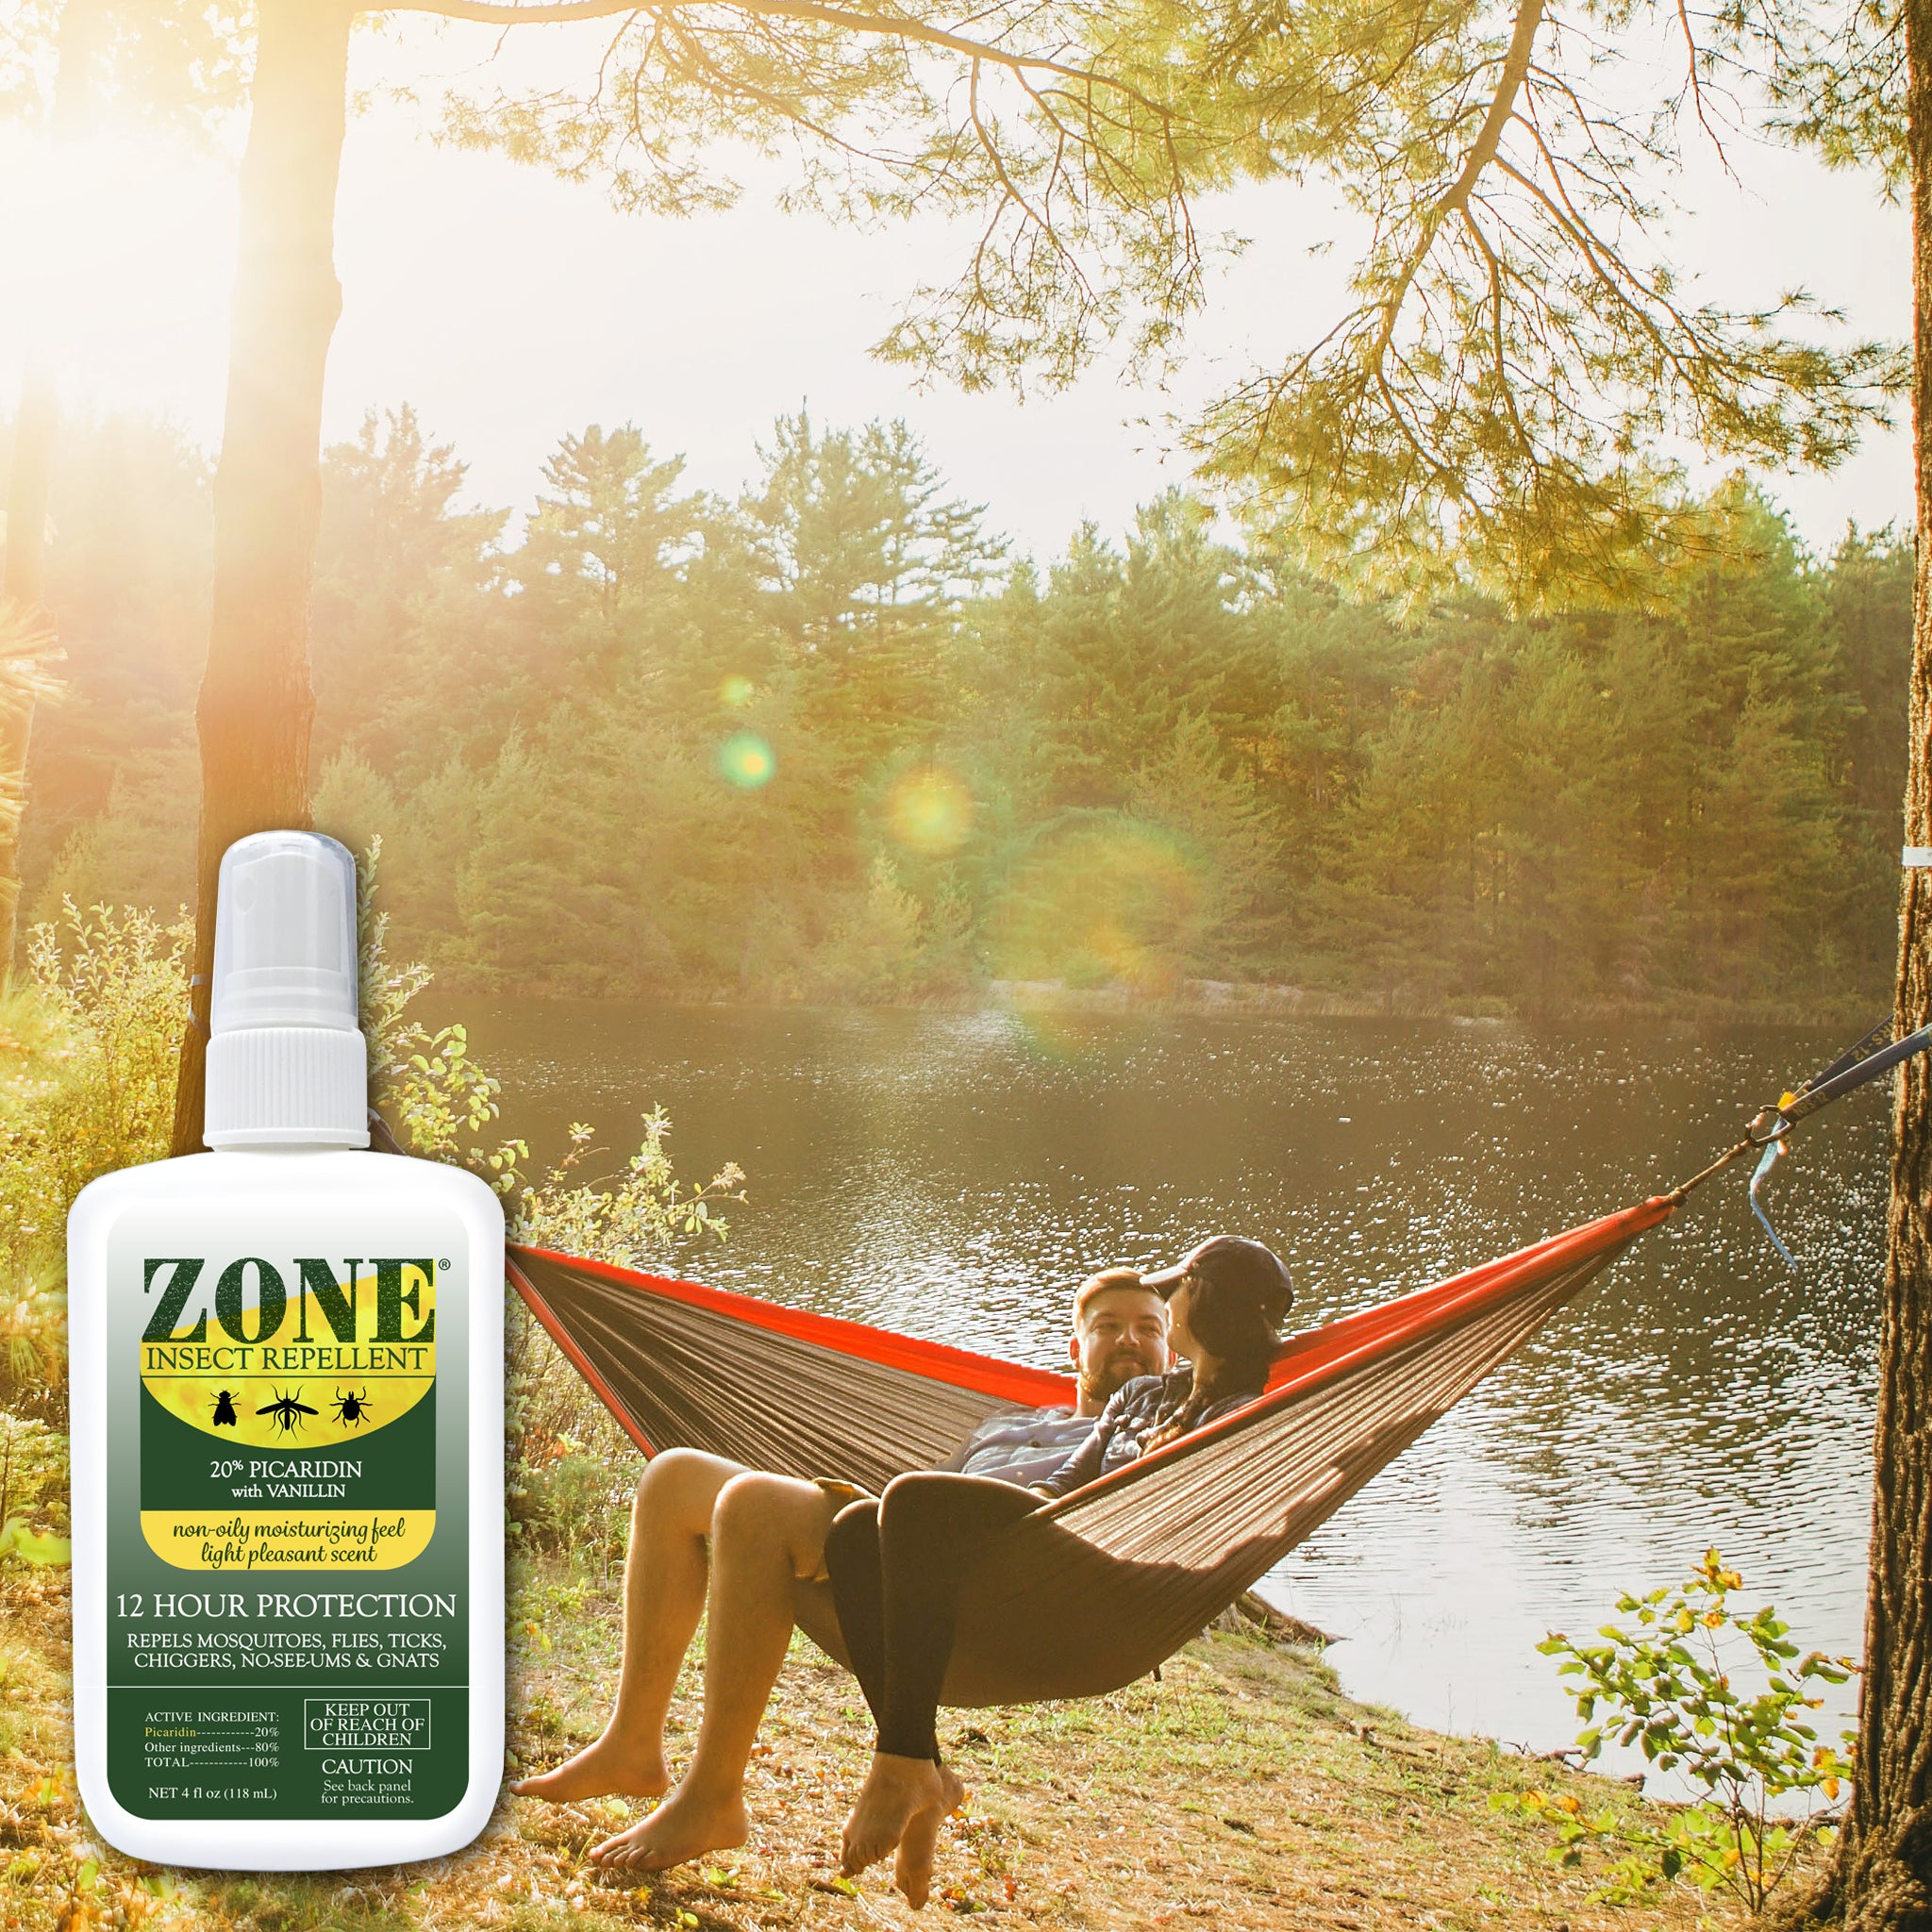 ZONE Insect Repellent